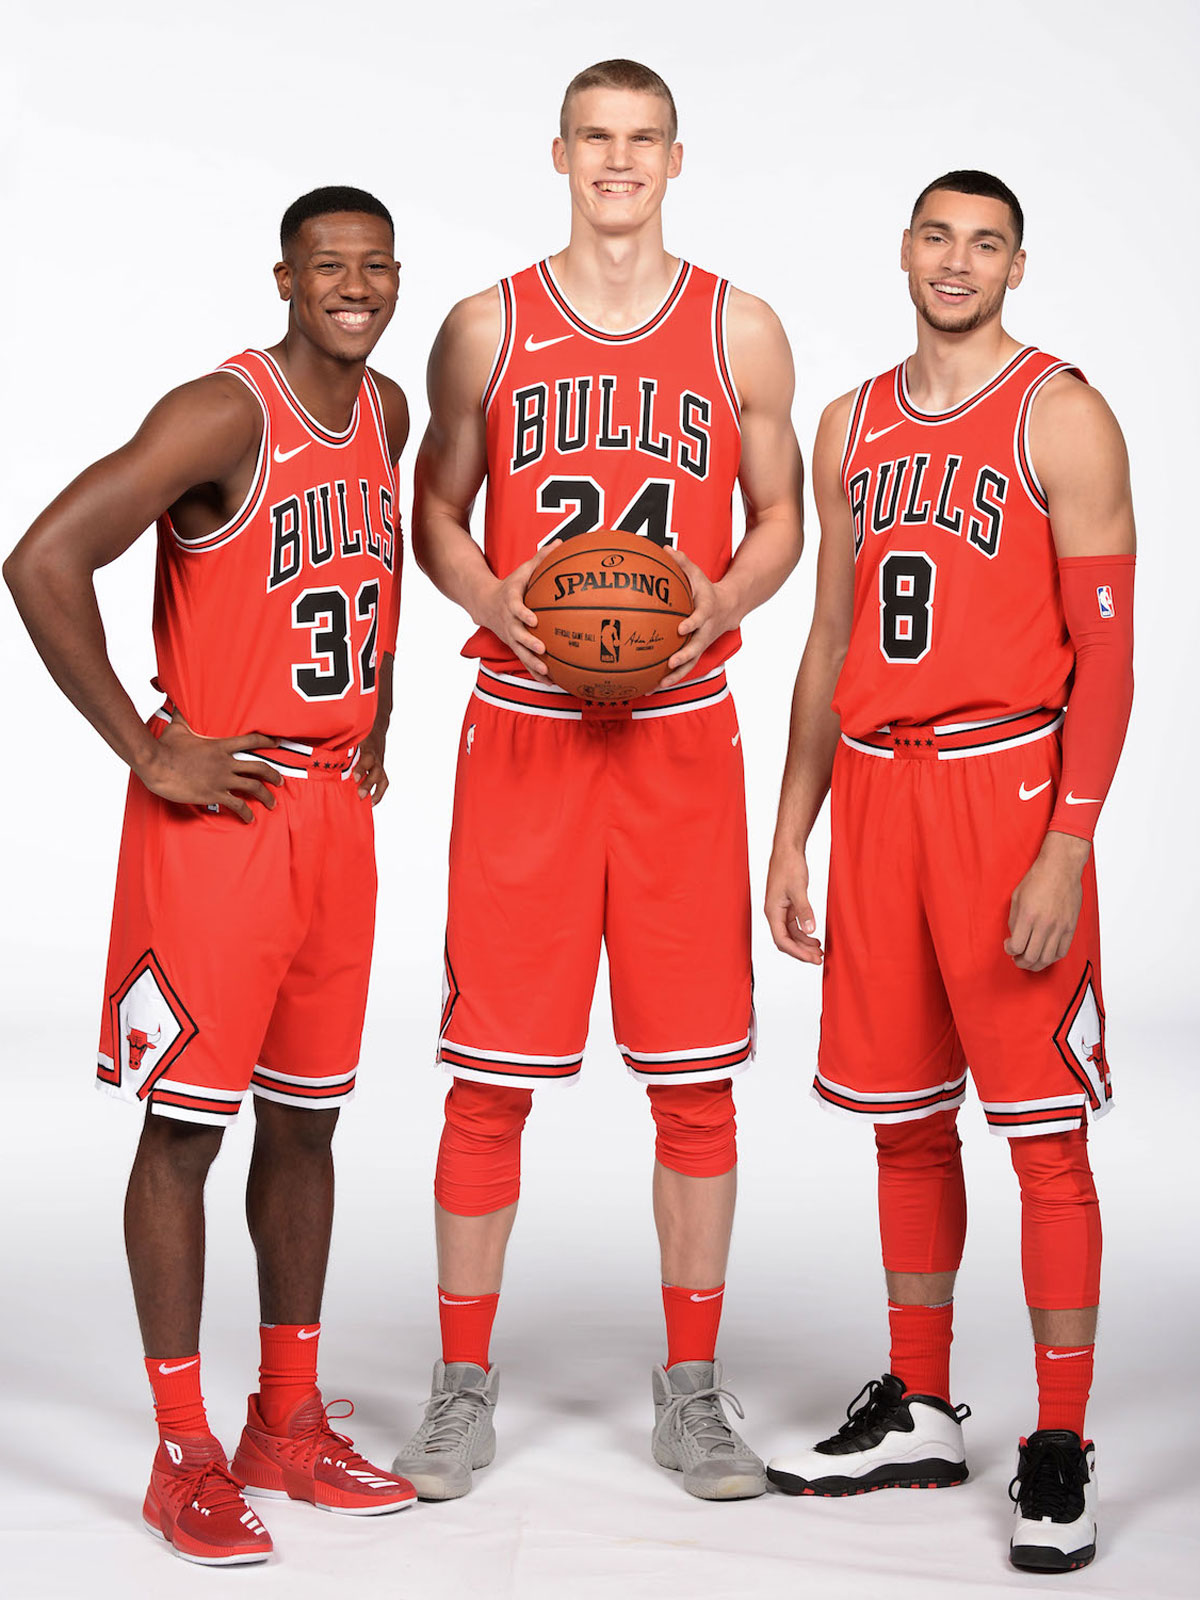 Kris Dunn #32, Lauri Markkanen #24 and Zach LaVine #8 of the Chicago Bulls poses for a portrait during the 2017-18 NBA Media Day on September 25, 2017 at the United Center in Chicago, Illinois